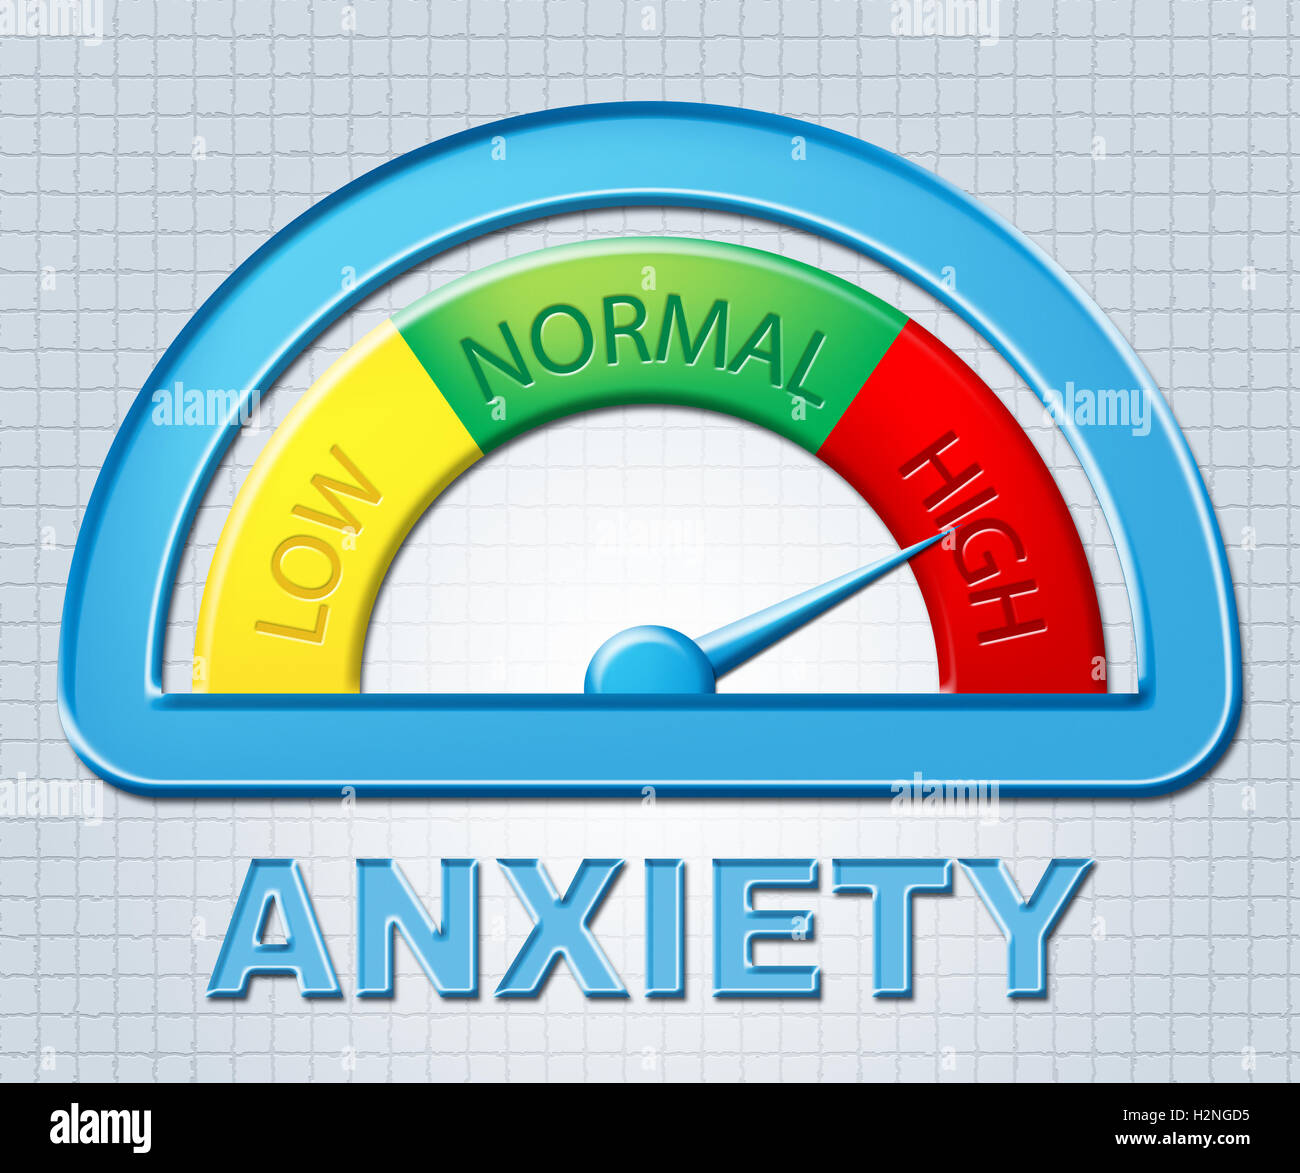 High Anxiety Indicating Max Stress And Fear Stock Photo